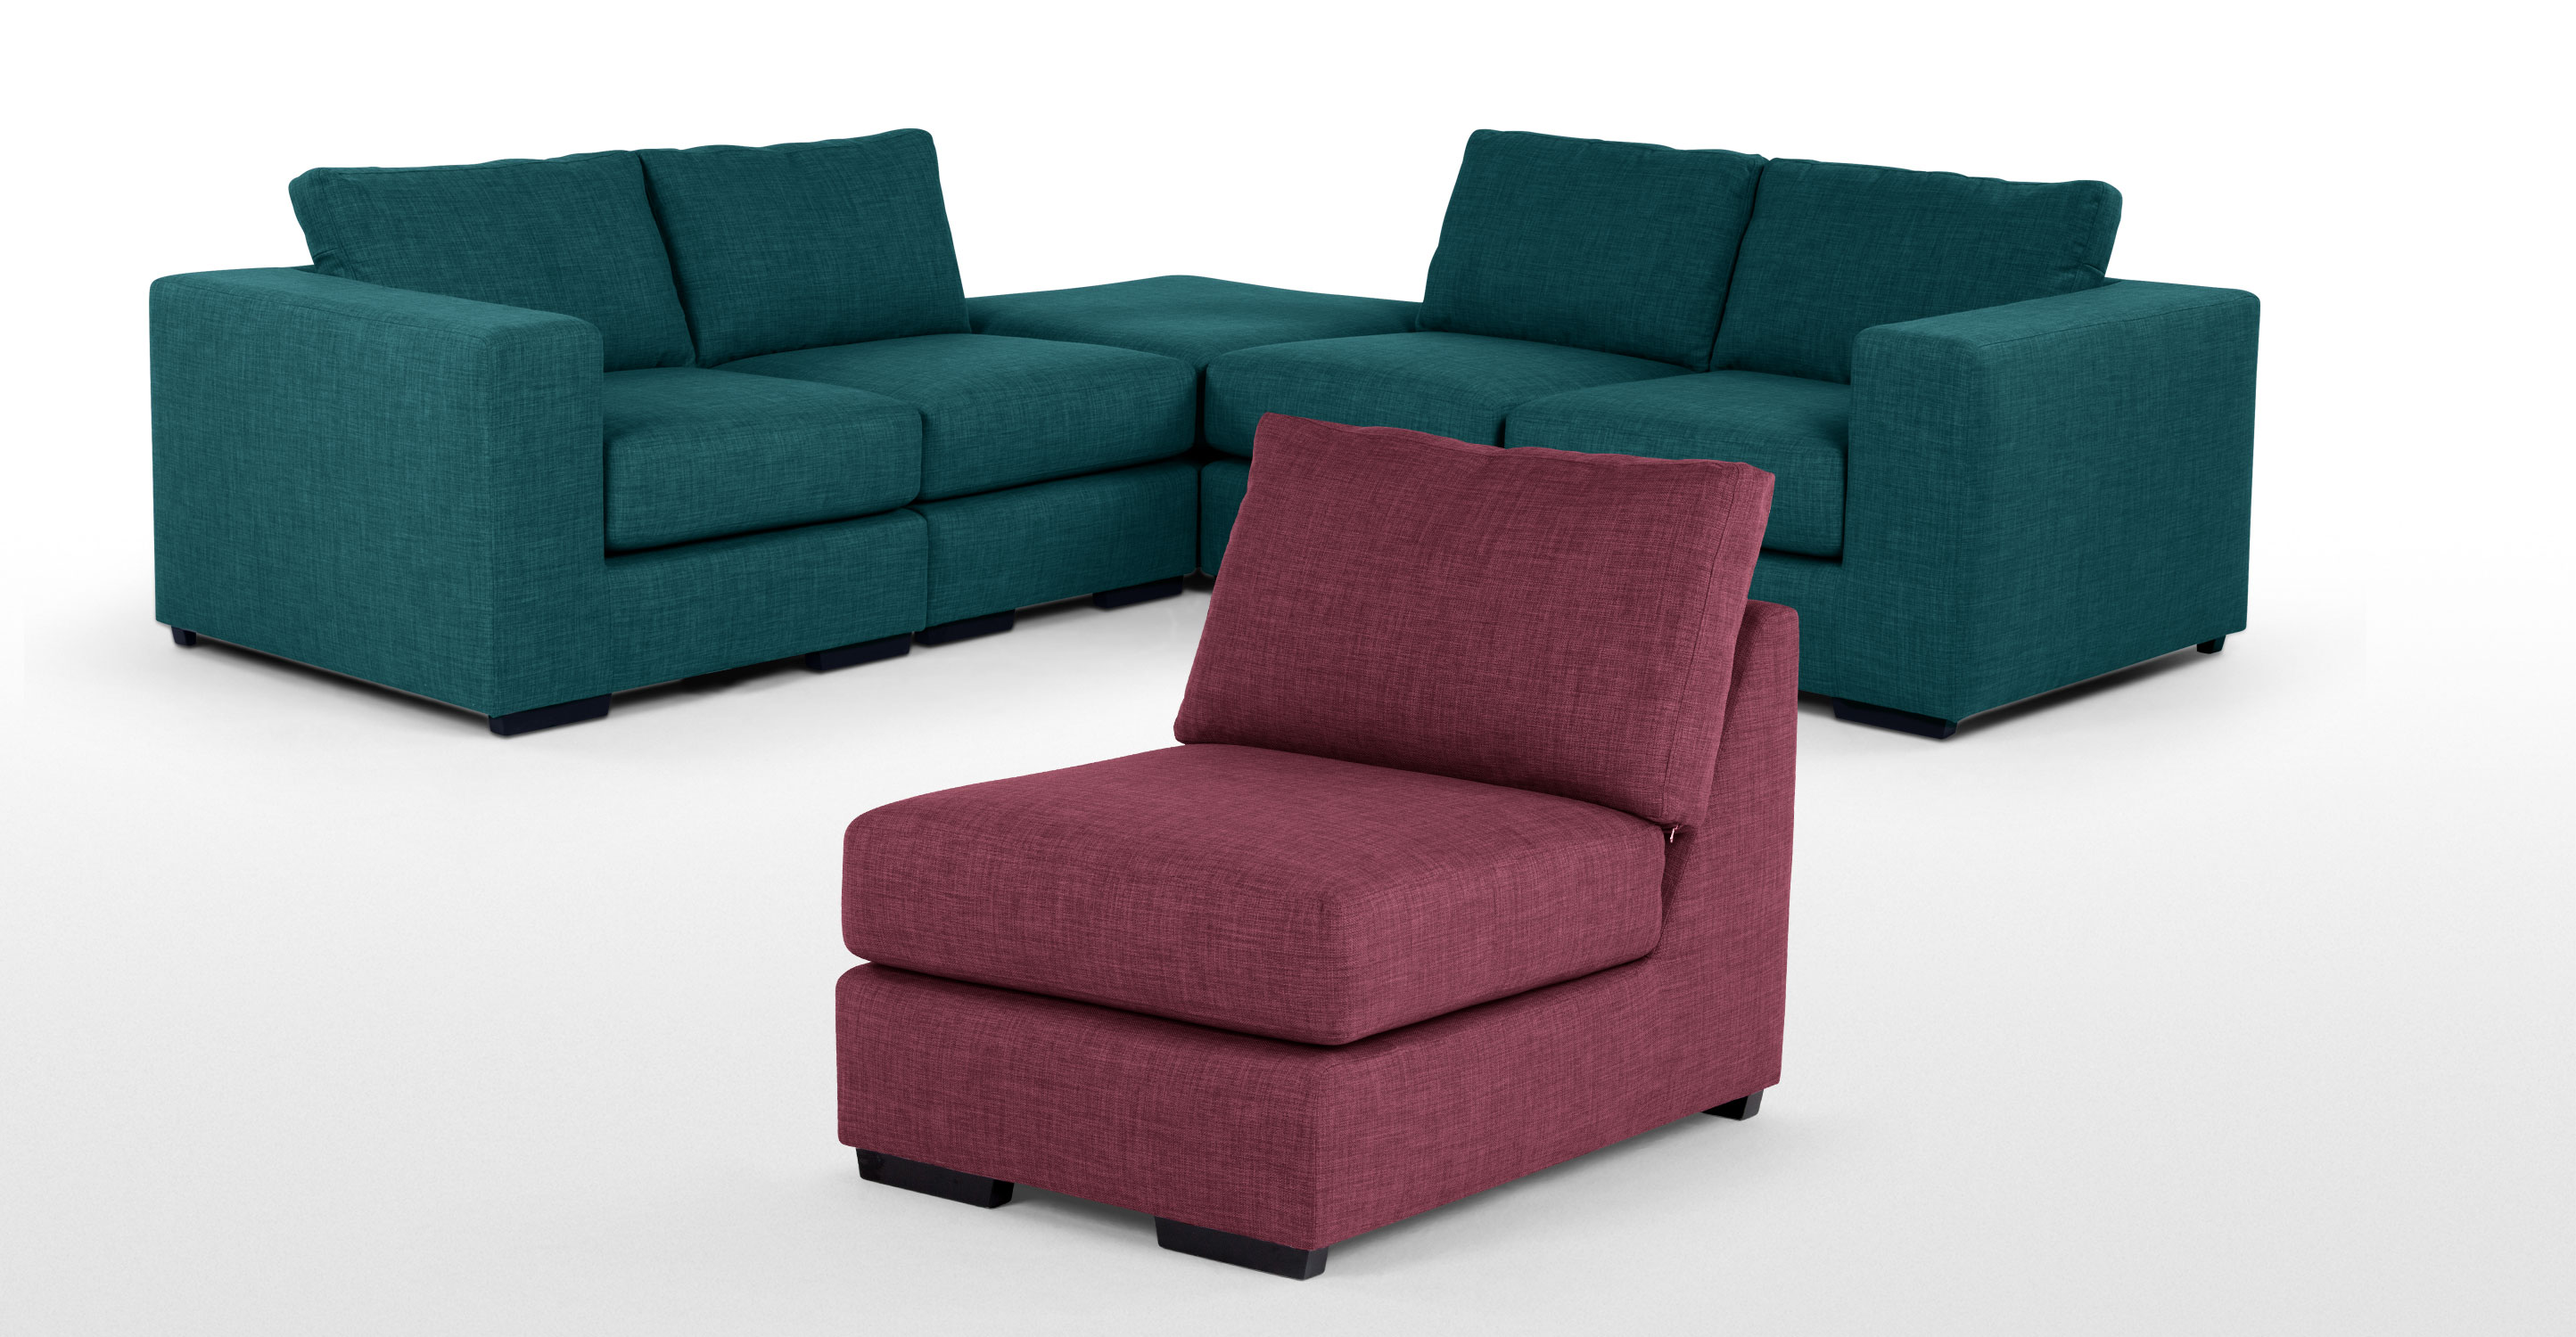 Mortimer 4 Seater Modular Sofa Shadow Teal